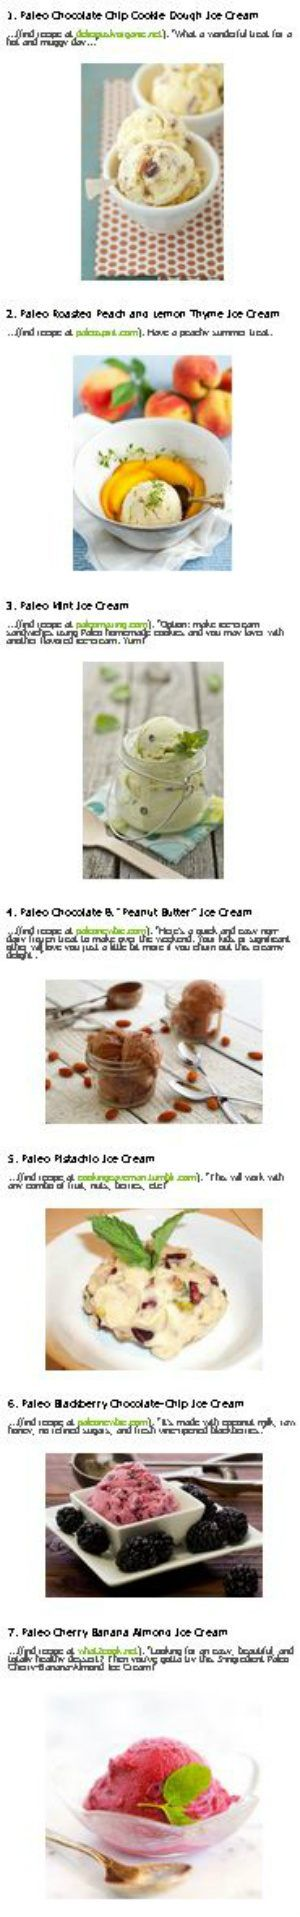 "carb free ice cream quest Paleo Ice Cream Dairy-free Ice Cream Desserts 16 Scrumptious Paleo Ice Cream Recipes "" This will blow your mind - no refined sugar, no dairy, insanely delicious"" link 1. Paleo Chocolate Chip Cookie Dough Ice Cream 2. Paleo Roasted Peach and Lemon Thyme Ice Cream 3. Paleo Mint Ice Cream 4. Paleo Chocolate & ""Peanut Butter"" Ice Cream 5. Paleo Pistachio Ice Cream 6. Paleo Blackberry Chocolate-Chip Ice Cream 7. Paleo Cherry Banana Almond Ice Cream 8. Paleo Chocolate…"